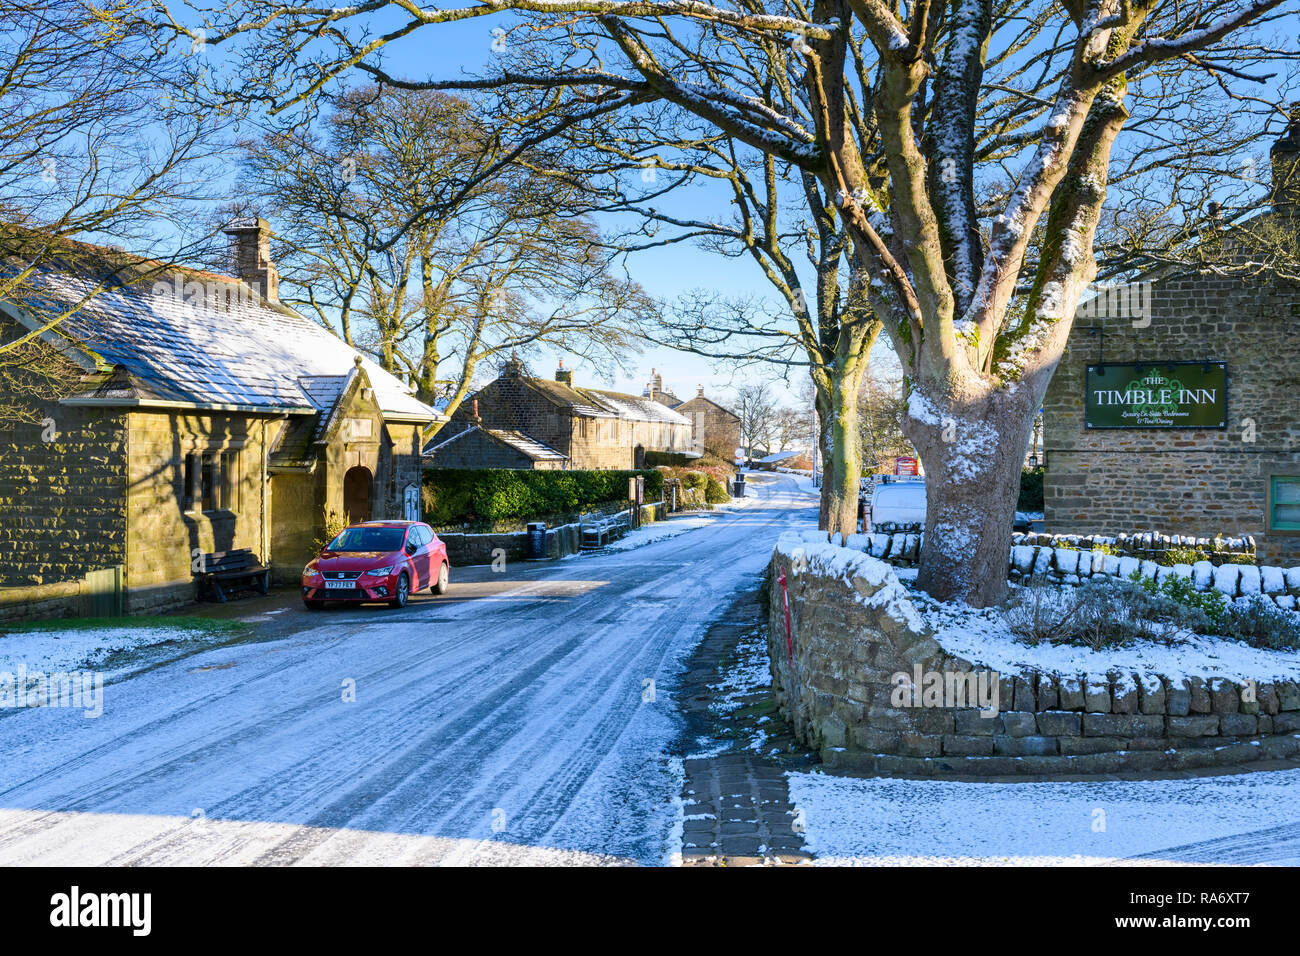 View of icy & snow covered main street (with pub & hall) in small scenic rural village on cold snowy winter day - Timble, North Yorkshire, England, UK - Stock Image